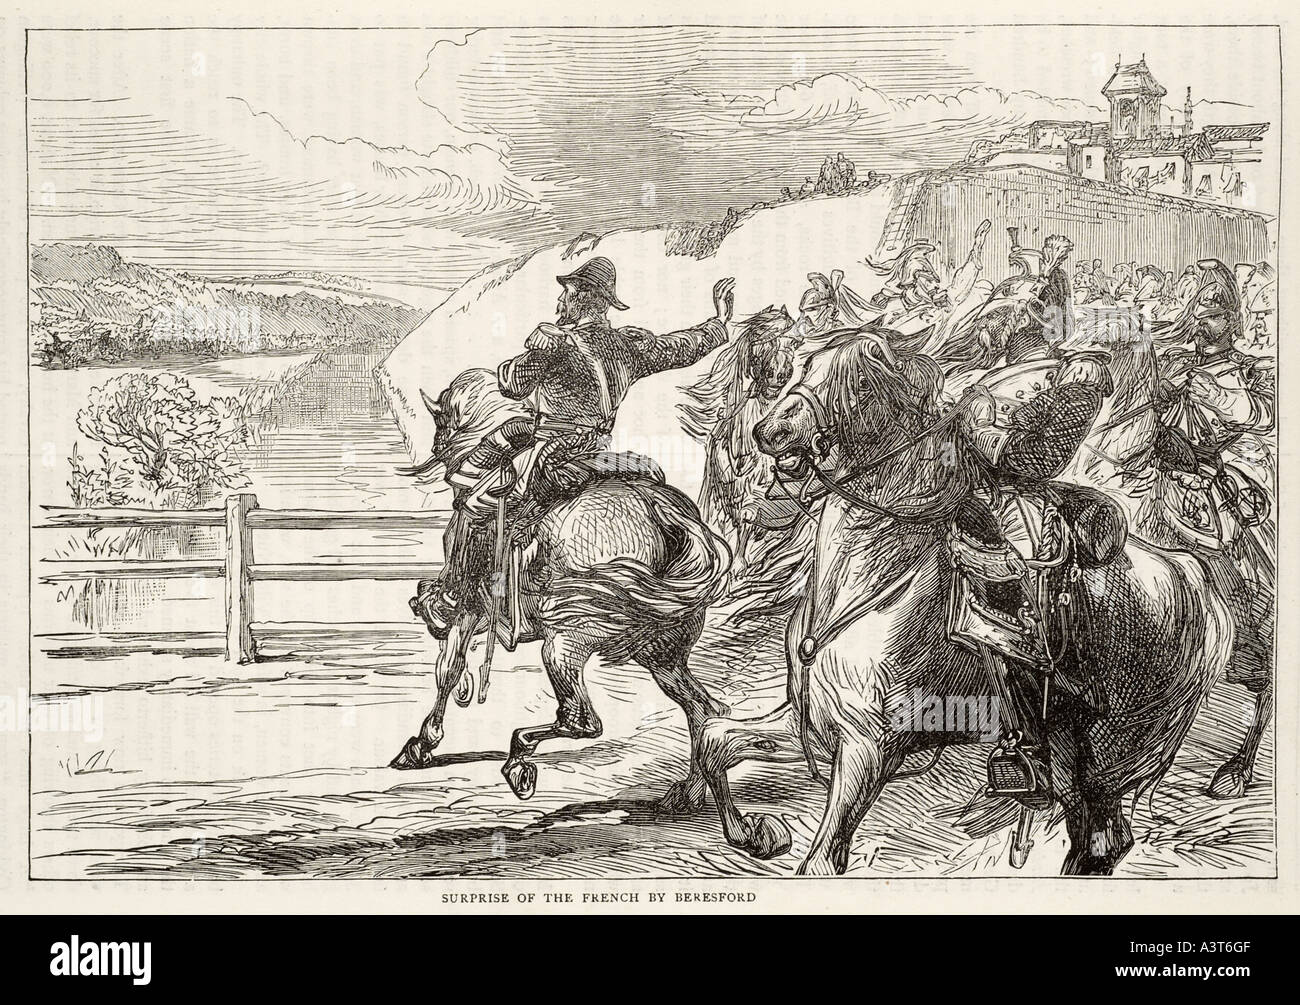 surprise french beresford horse cavalry war soldier conflict peninsular Spain France Britain lance lancer saddle charge road unp - Stock Image